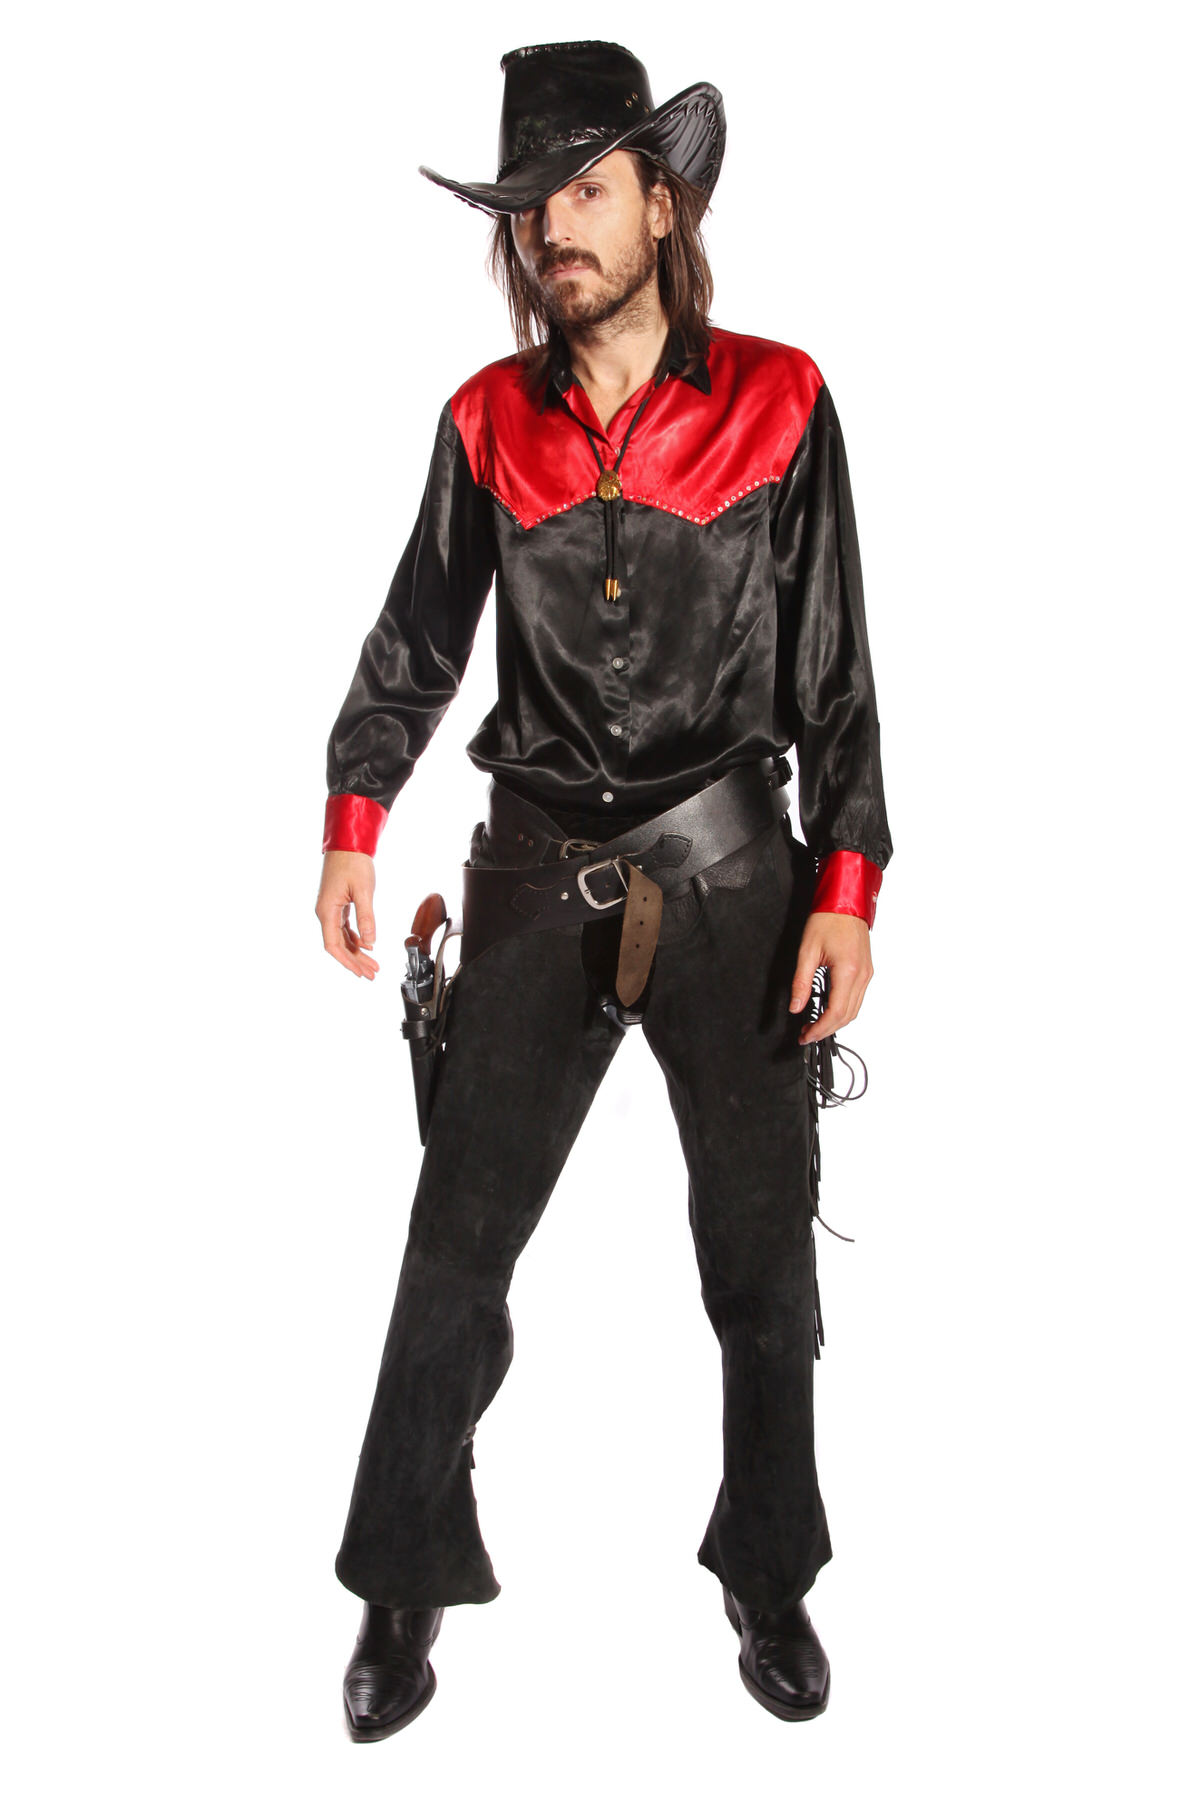 COWBOY RED AND BLACK COSTUME W AUTHENTIC HAT & GUN